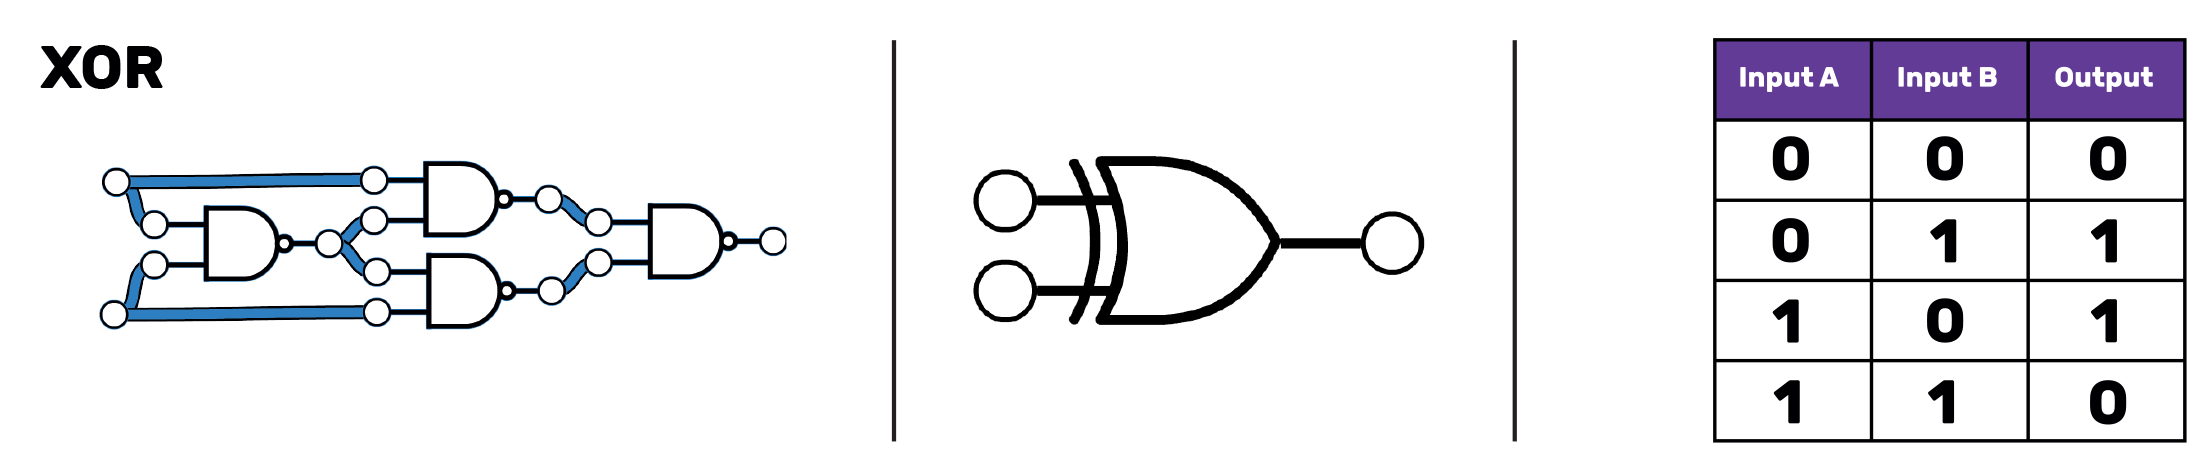 "On the left, four NAND gates in a circuit. One of them leads to the output. Each of the inputs to this NAND gate is an ouput from one of two other equivalent NAND gates. These each have one input from the input to the circuit, and the other from a fourth NAND gate. This fourth NAND gate takes one input from each input to the circuit. In the middle, the XOR symbol which is the OR symbol with an extra curved line on the left hand side, parallel to the edge of the shape of the OR gate. On the right, a truth table with three columns, labelled ""Input A"", ""Input B"" and ""Output"". The first row reads 0 0 0, the second 0 1 1. The third row reads 1 0 11 and the final row 1 1 0."